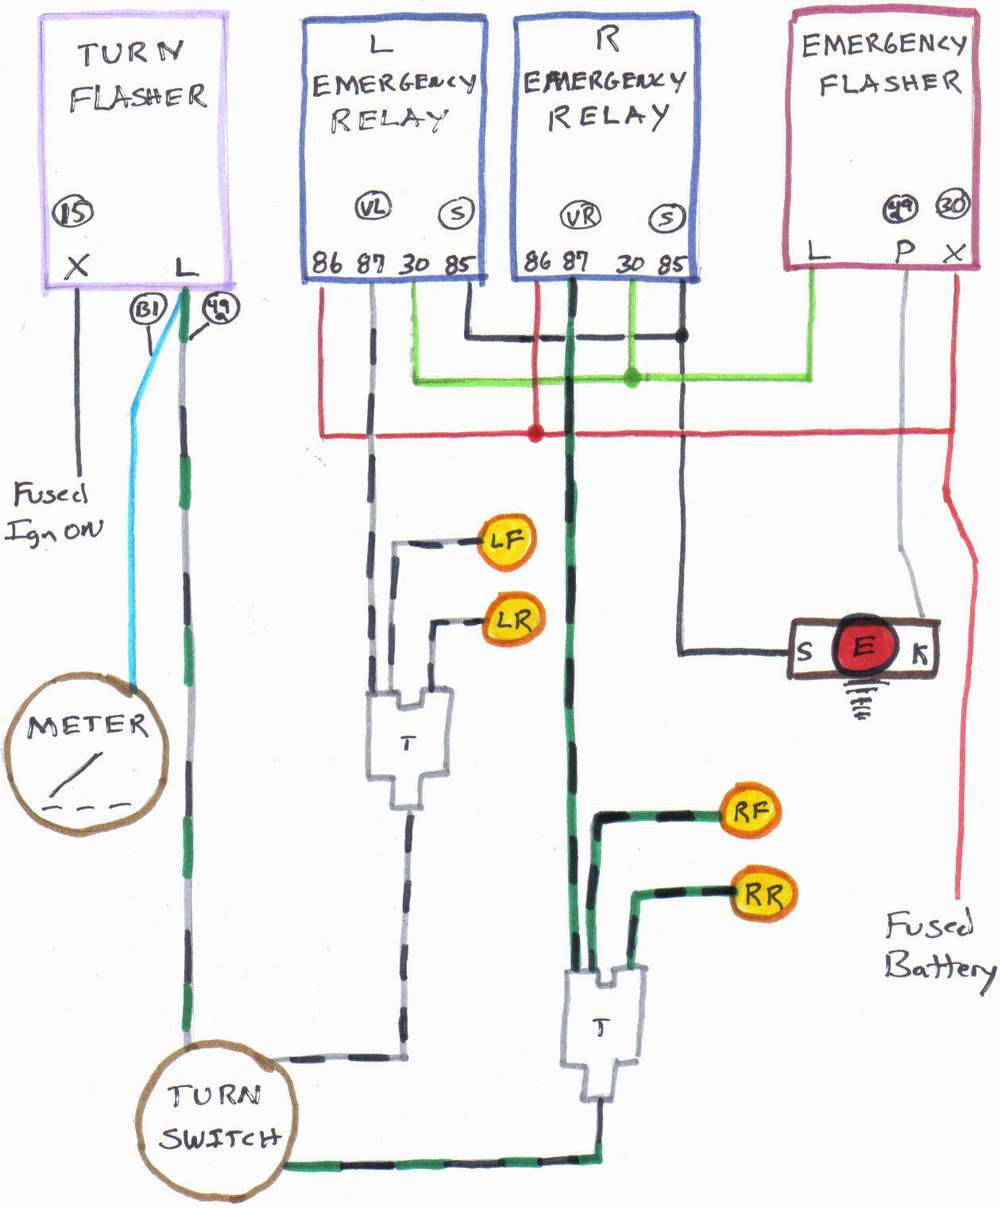 hight resolution of wiring diagram for emergency flashers wiring diagram load wiring diagram for emergency flashers